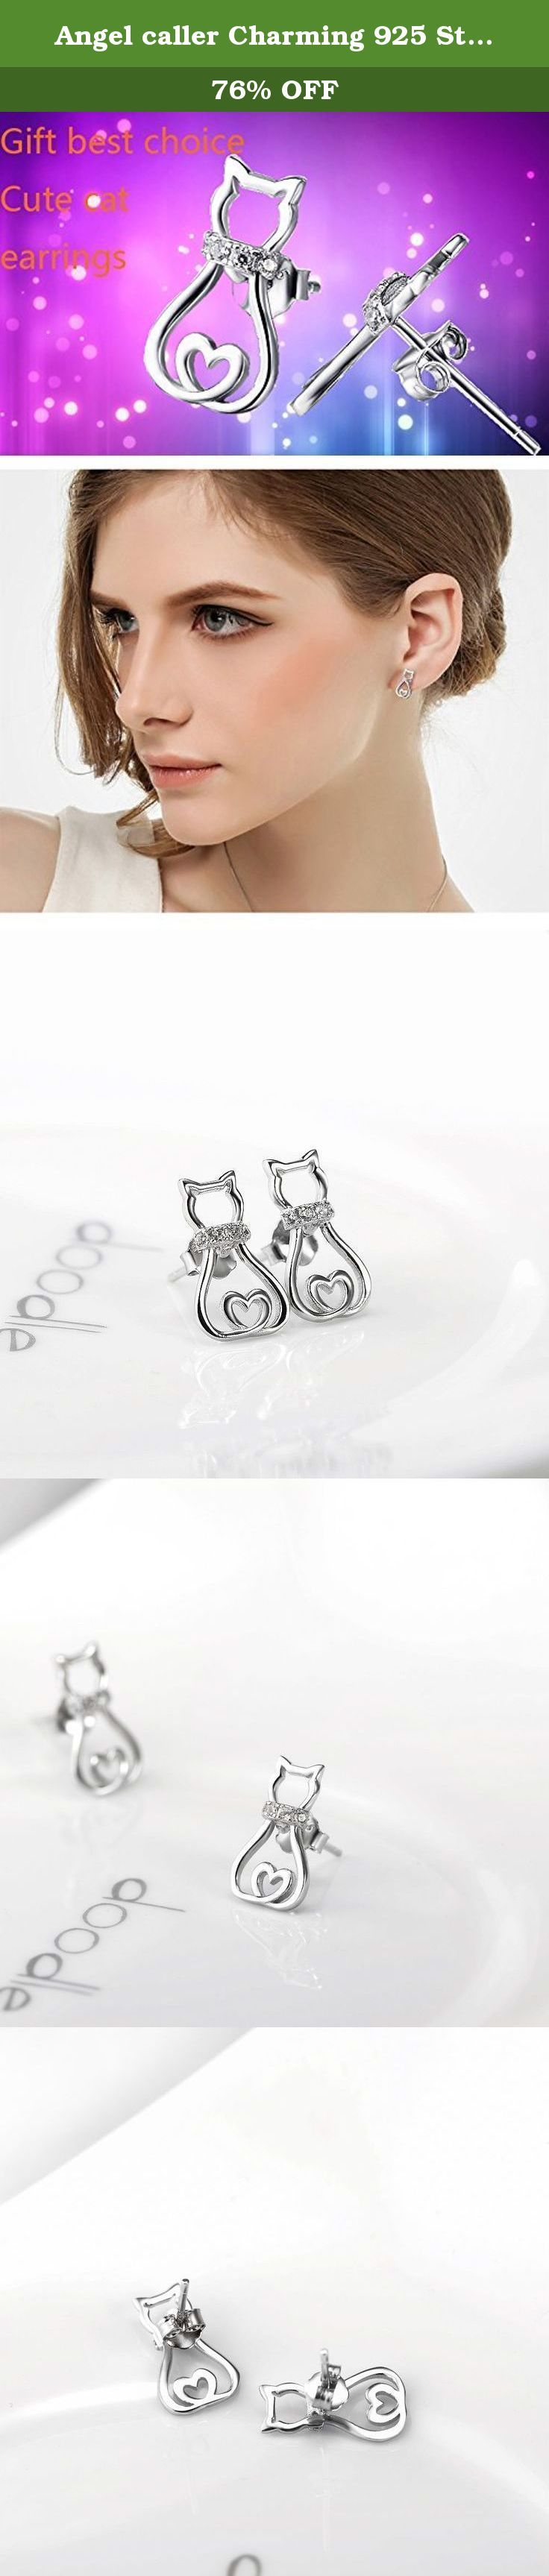 Angel caller Charming 925 Sterling Silver Cute Pet Cat Stud Earrings For Girls Women Ladies. UNIQUE CUTE LOVELY PET CAT STUD EARRINGS IS A GOOD CHOICE AS A GIFT IN ALL DEPARTMENT OR KINDS FESTIVALS. Company Product: Our company was founded in 2006,we have more than 100 branch offices nationwide and more than 2000 employees so far,there are kinds of jewelry,welcome to retail sale and wholesale. Guarantee: we sell the high quality and low price items,100% new style.and 100% 925 sterling...